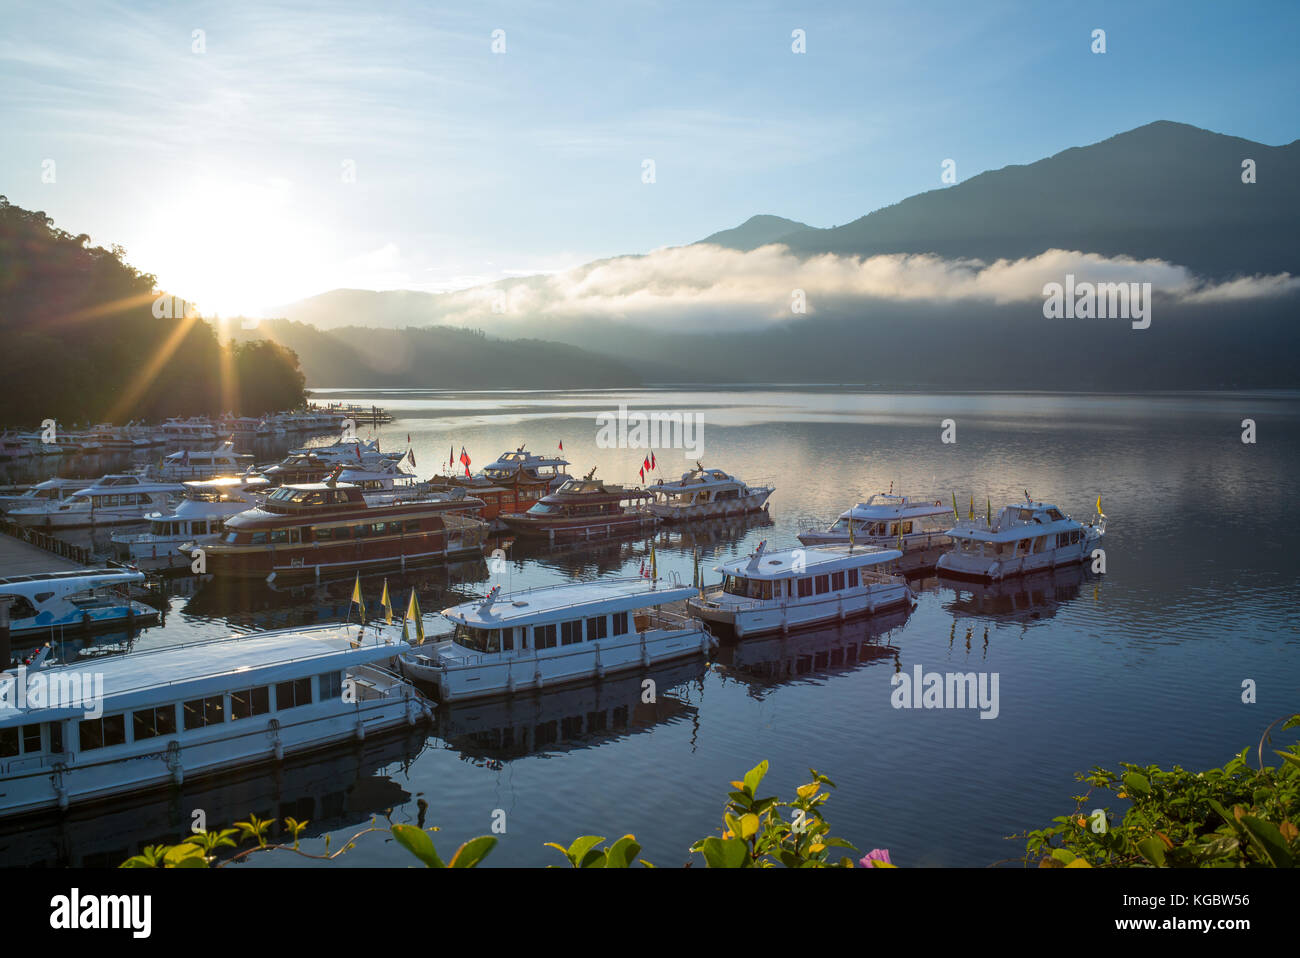 sunrise at sun moon lake in nantou, taiwan - Stock Image